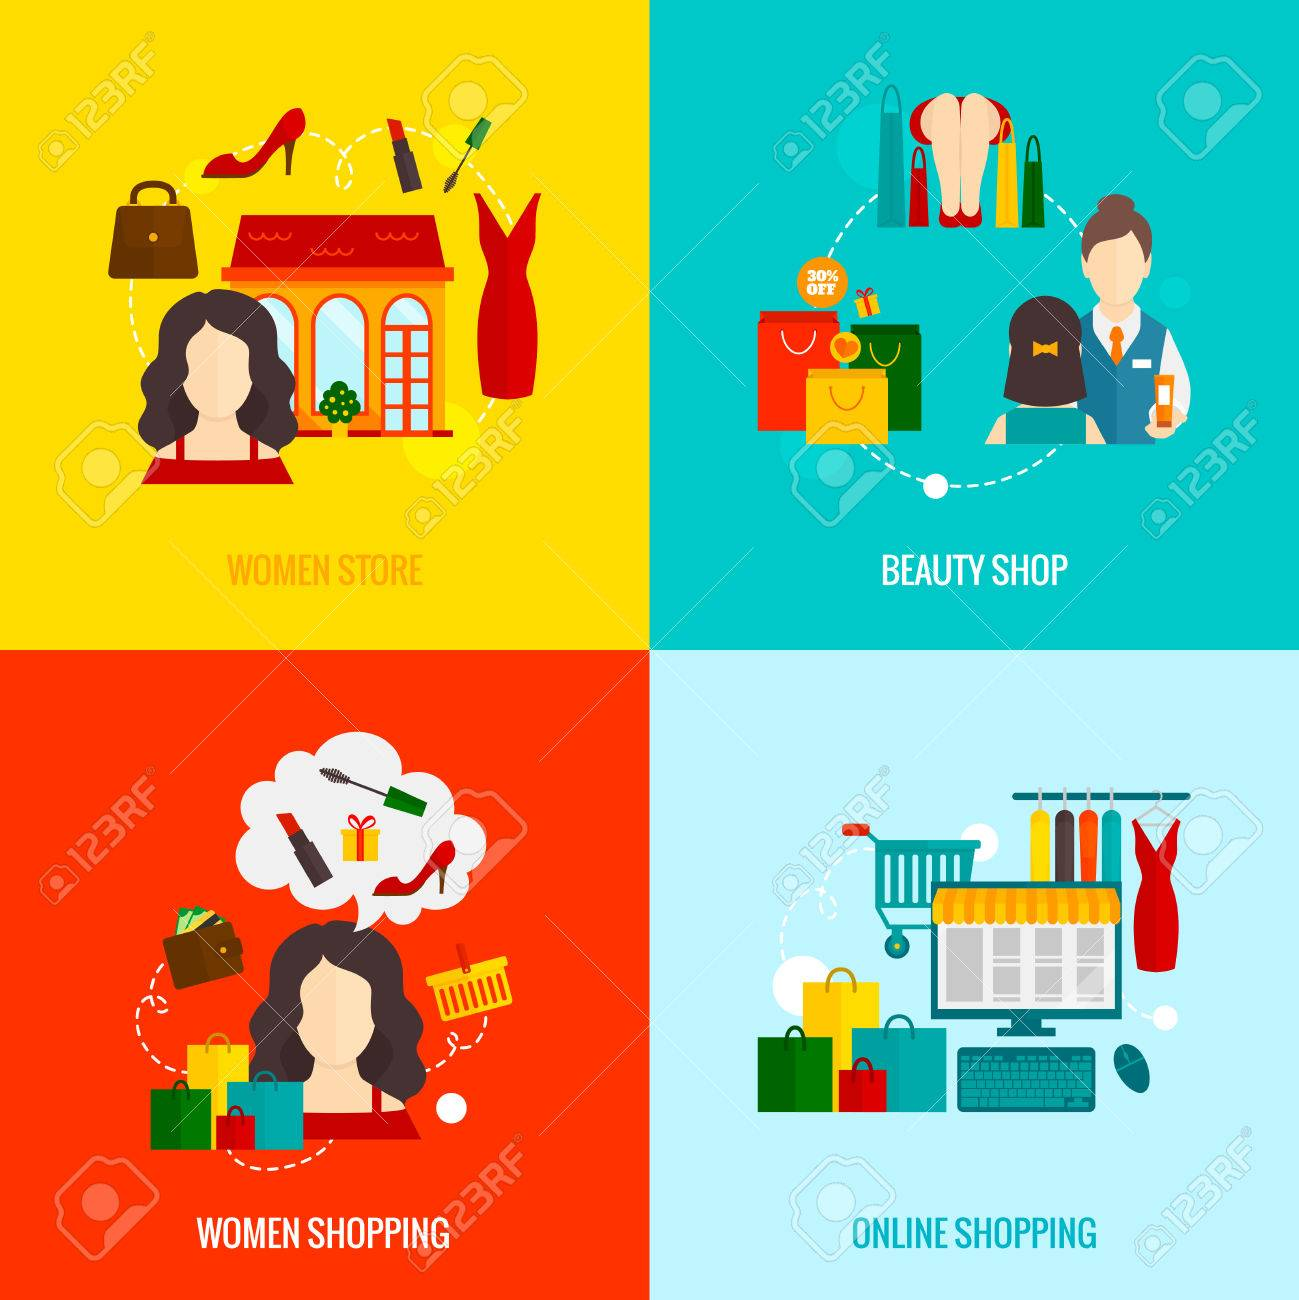 Woman online shopping design concepts set with beauty store flat